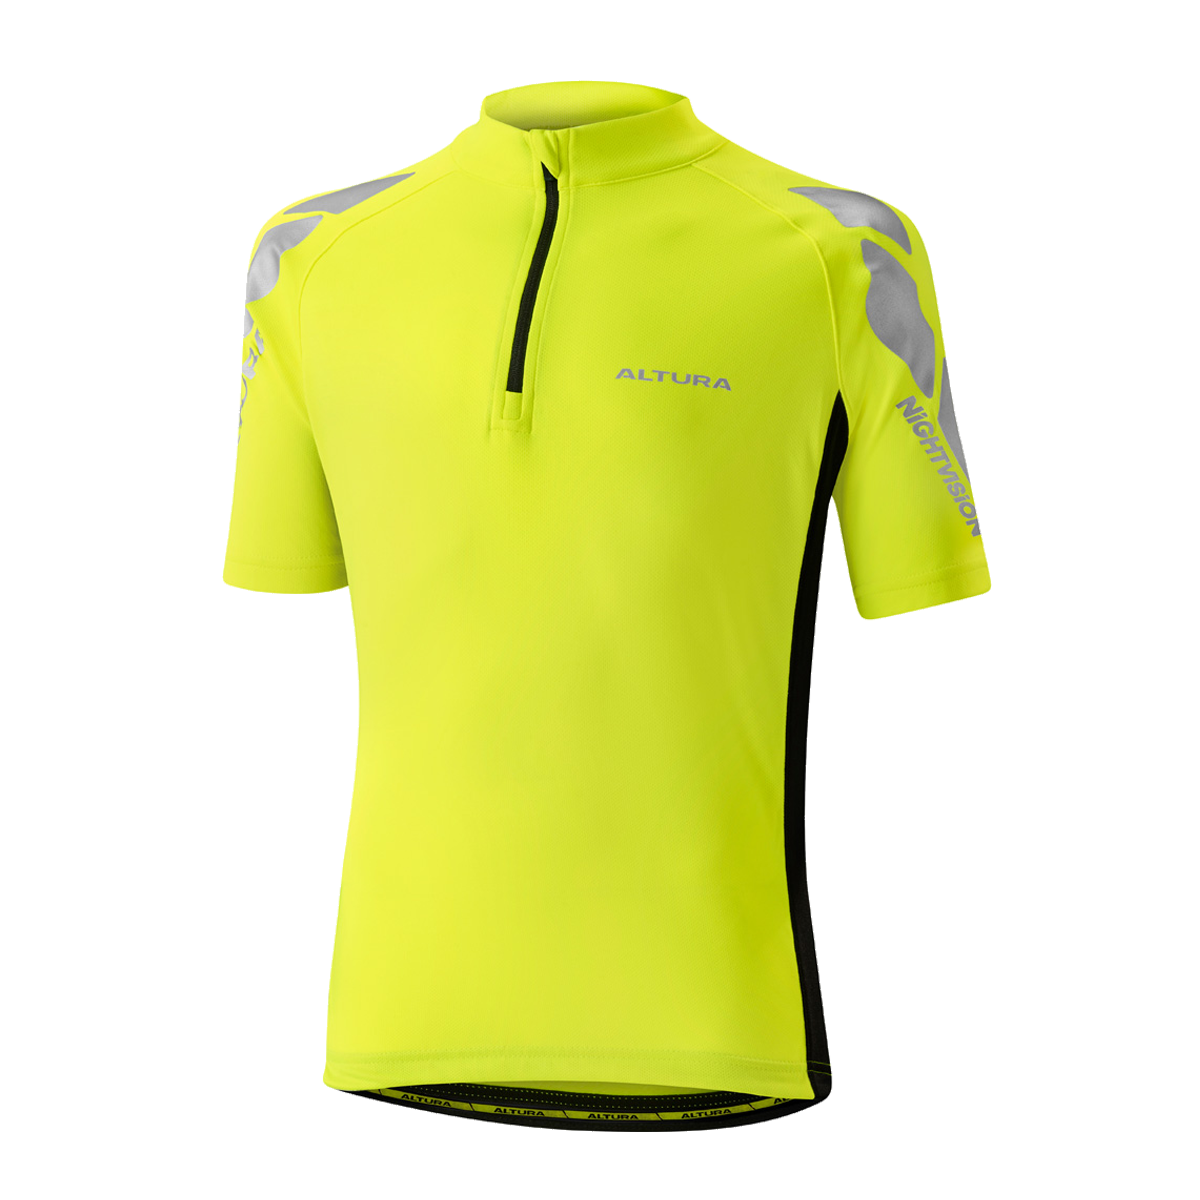 ALTURA YOUTH NIGHTVISION SHORT SLEEVE JERSEY 2016: BLUE/BLACK 10-12YRS